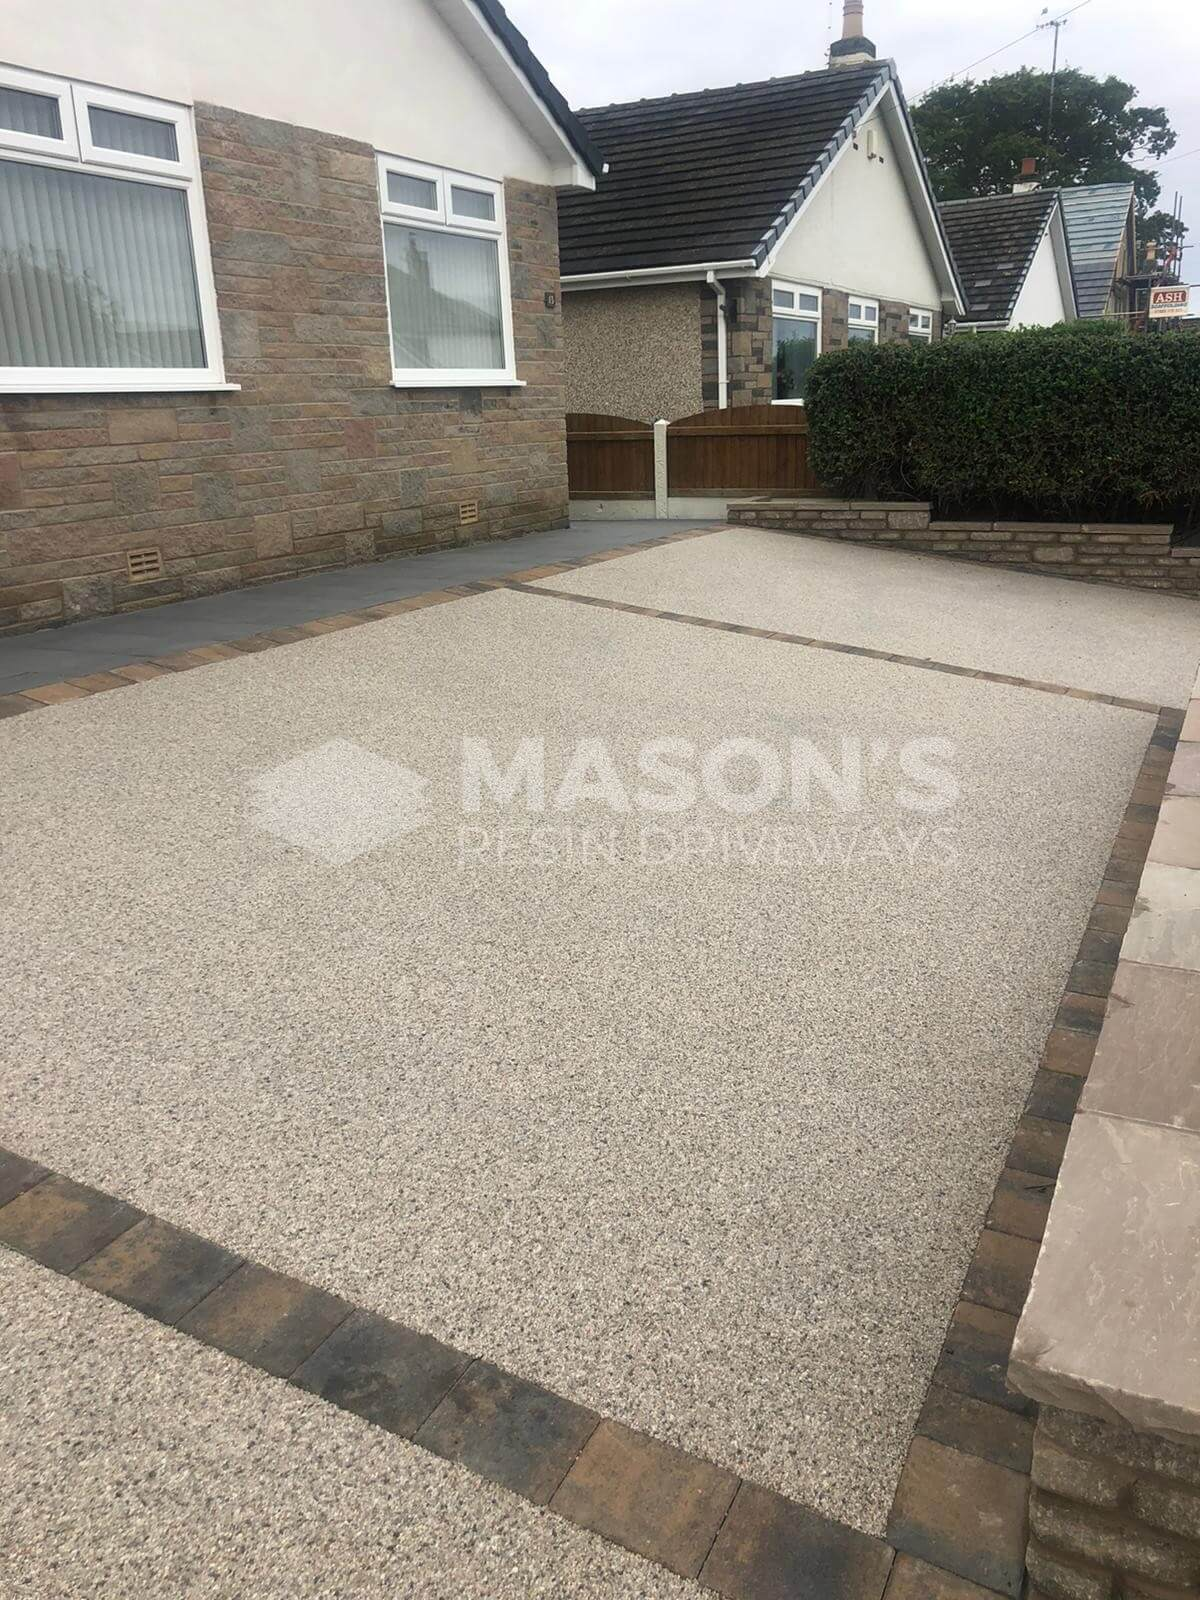 Full resin bound driveway pearl quartz in Preston, Lancashire